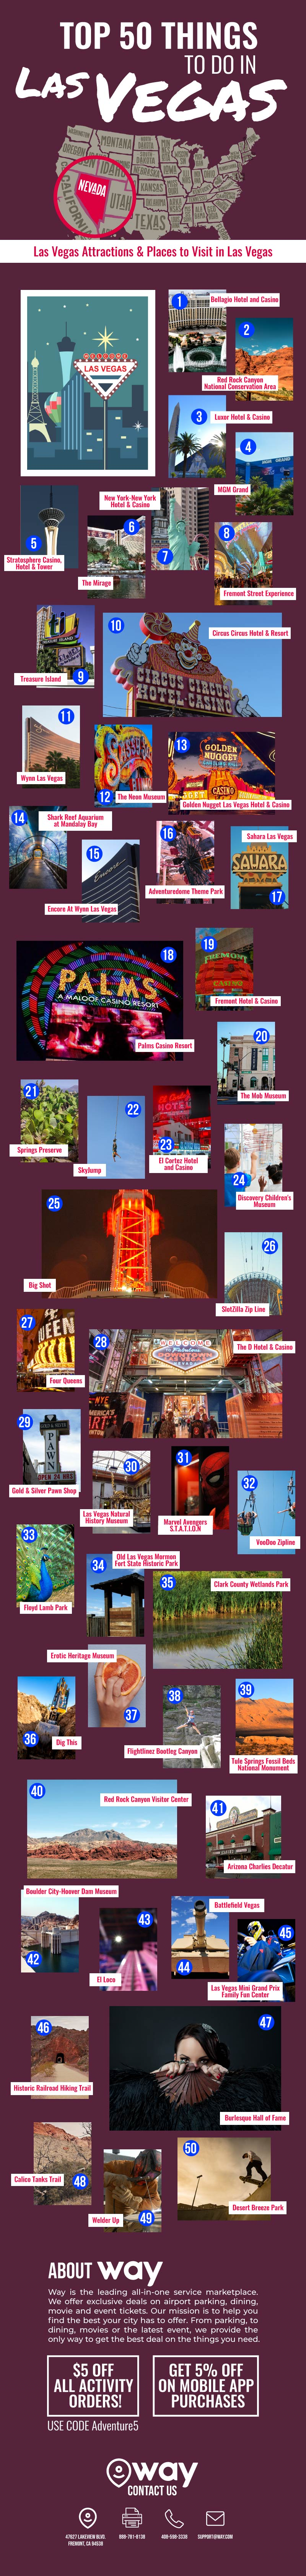 Top 50 Things to Do in Las Vegas-infographic-plaza